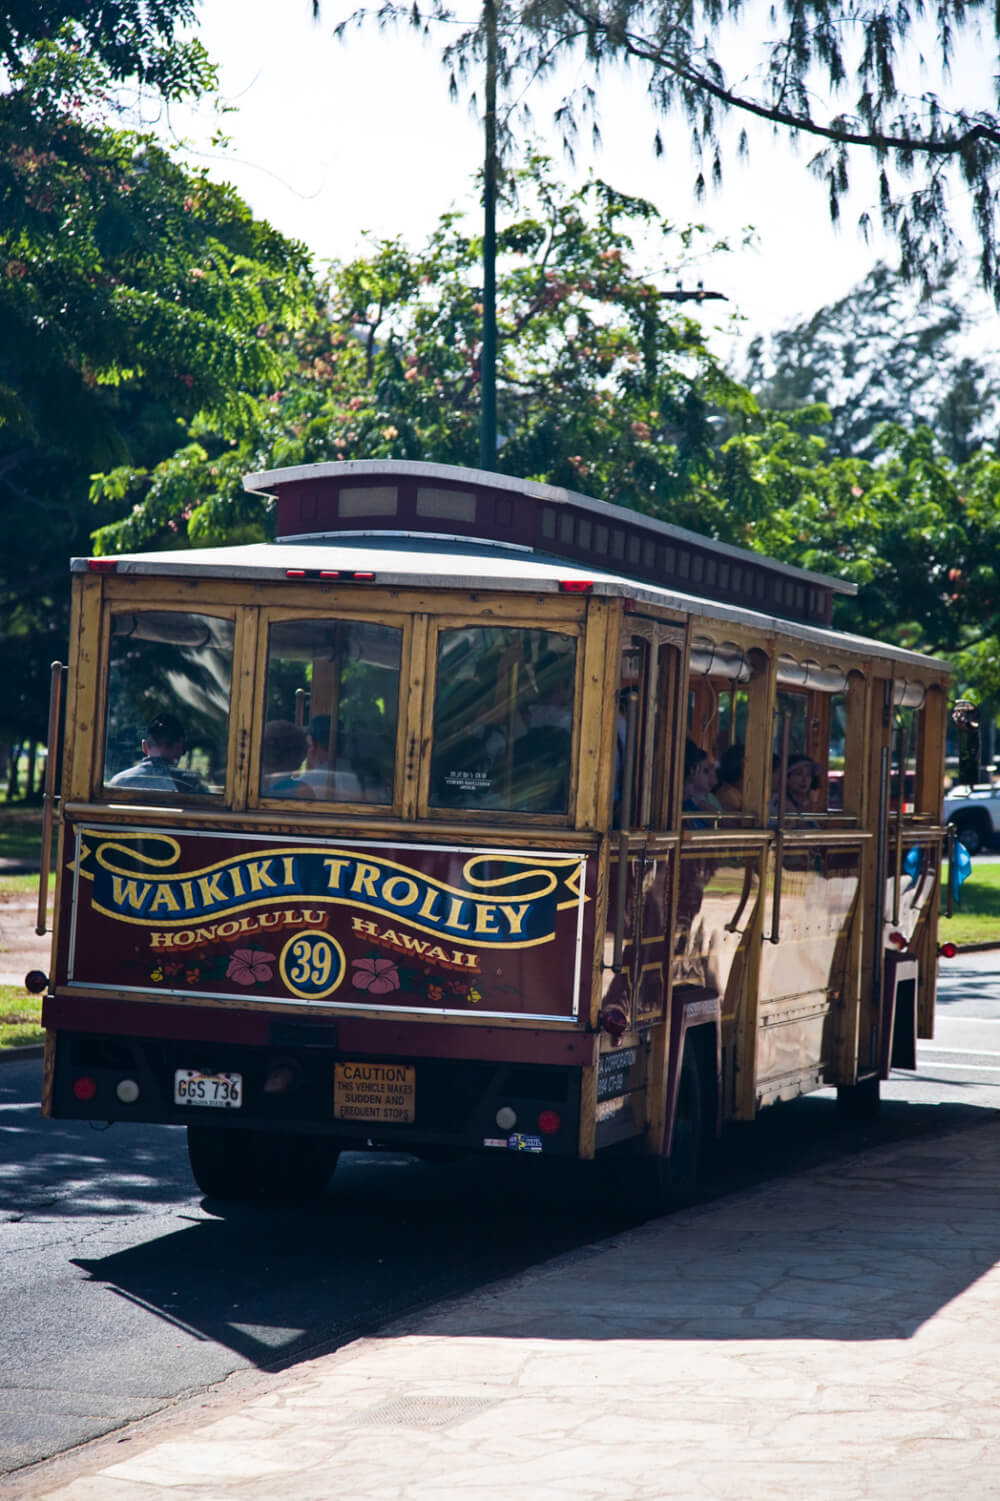 25 Amazing activities in Waikiki with kids featured by top Hawaii blog, Hawaii Travel with Kids: The Waikiki Trolley is an easy way to get around Waikiki on Oahu with kids